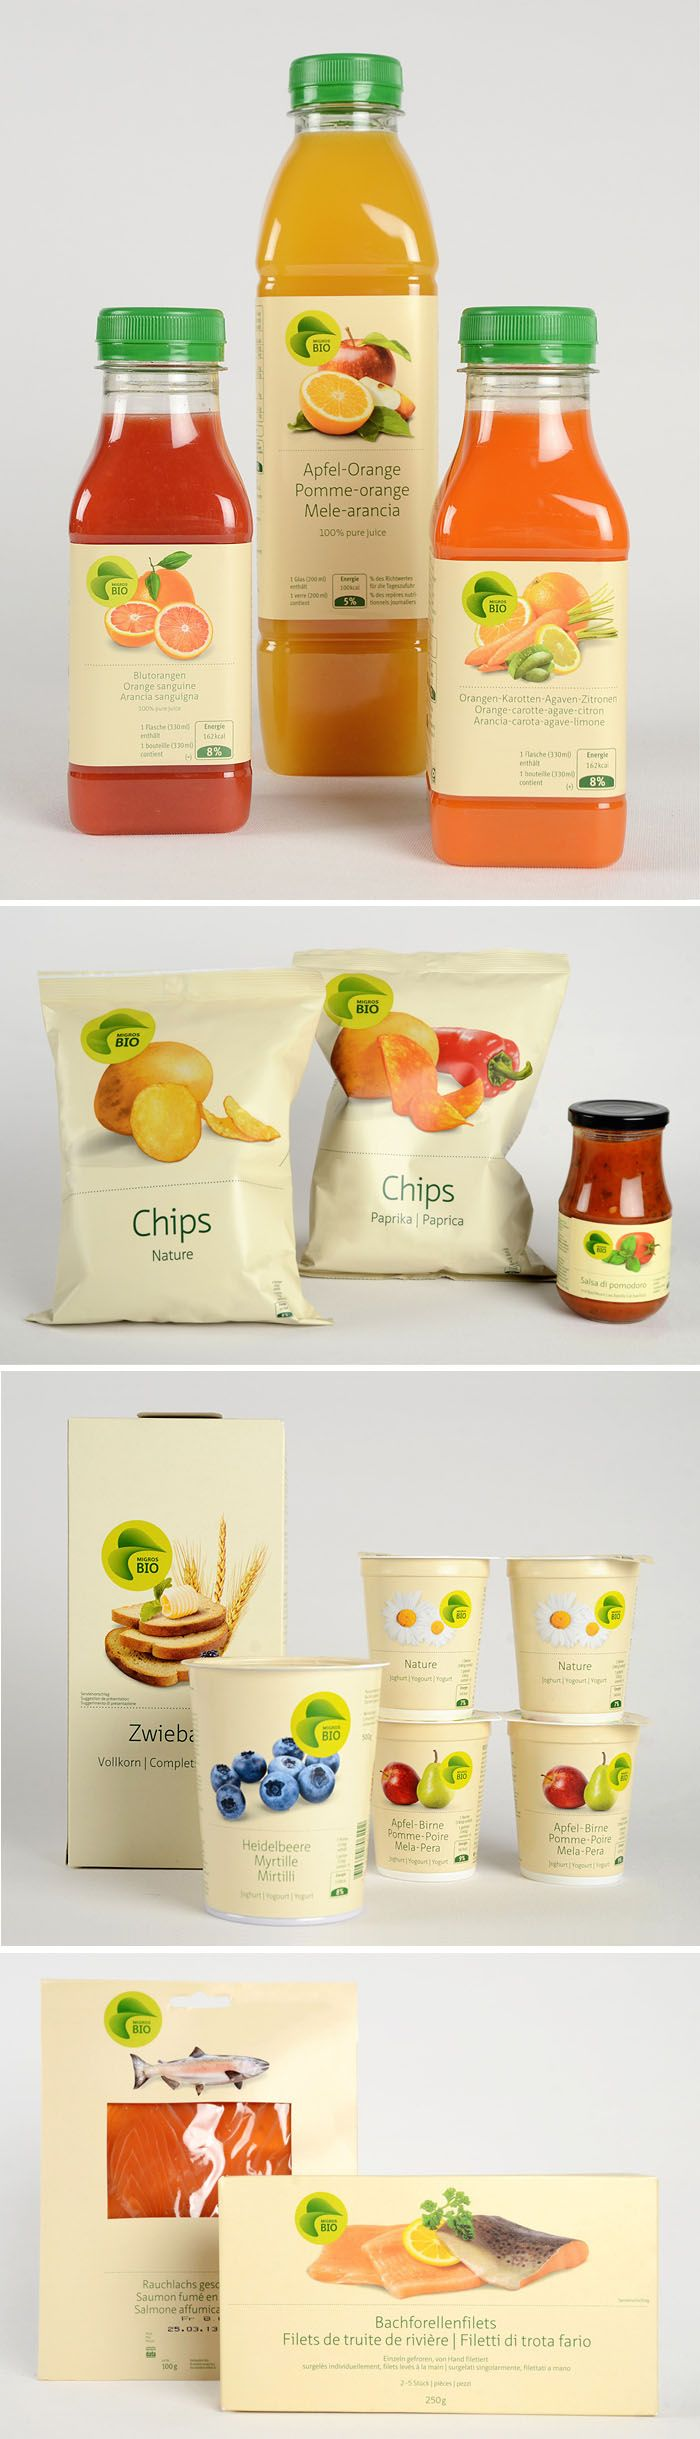 Switzerland retailer Migros' BIO range | developed by graphic designer Pascal Frey and art director Schneiter Meier